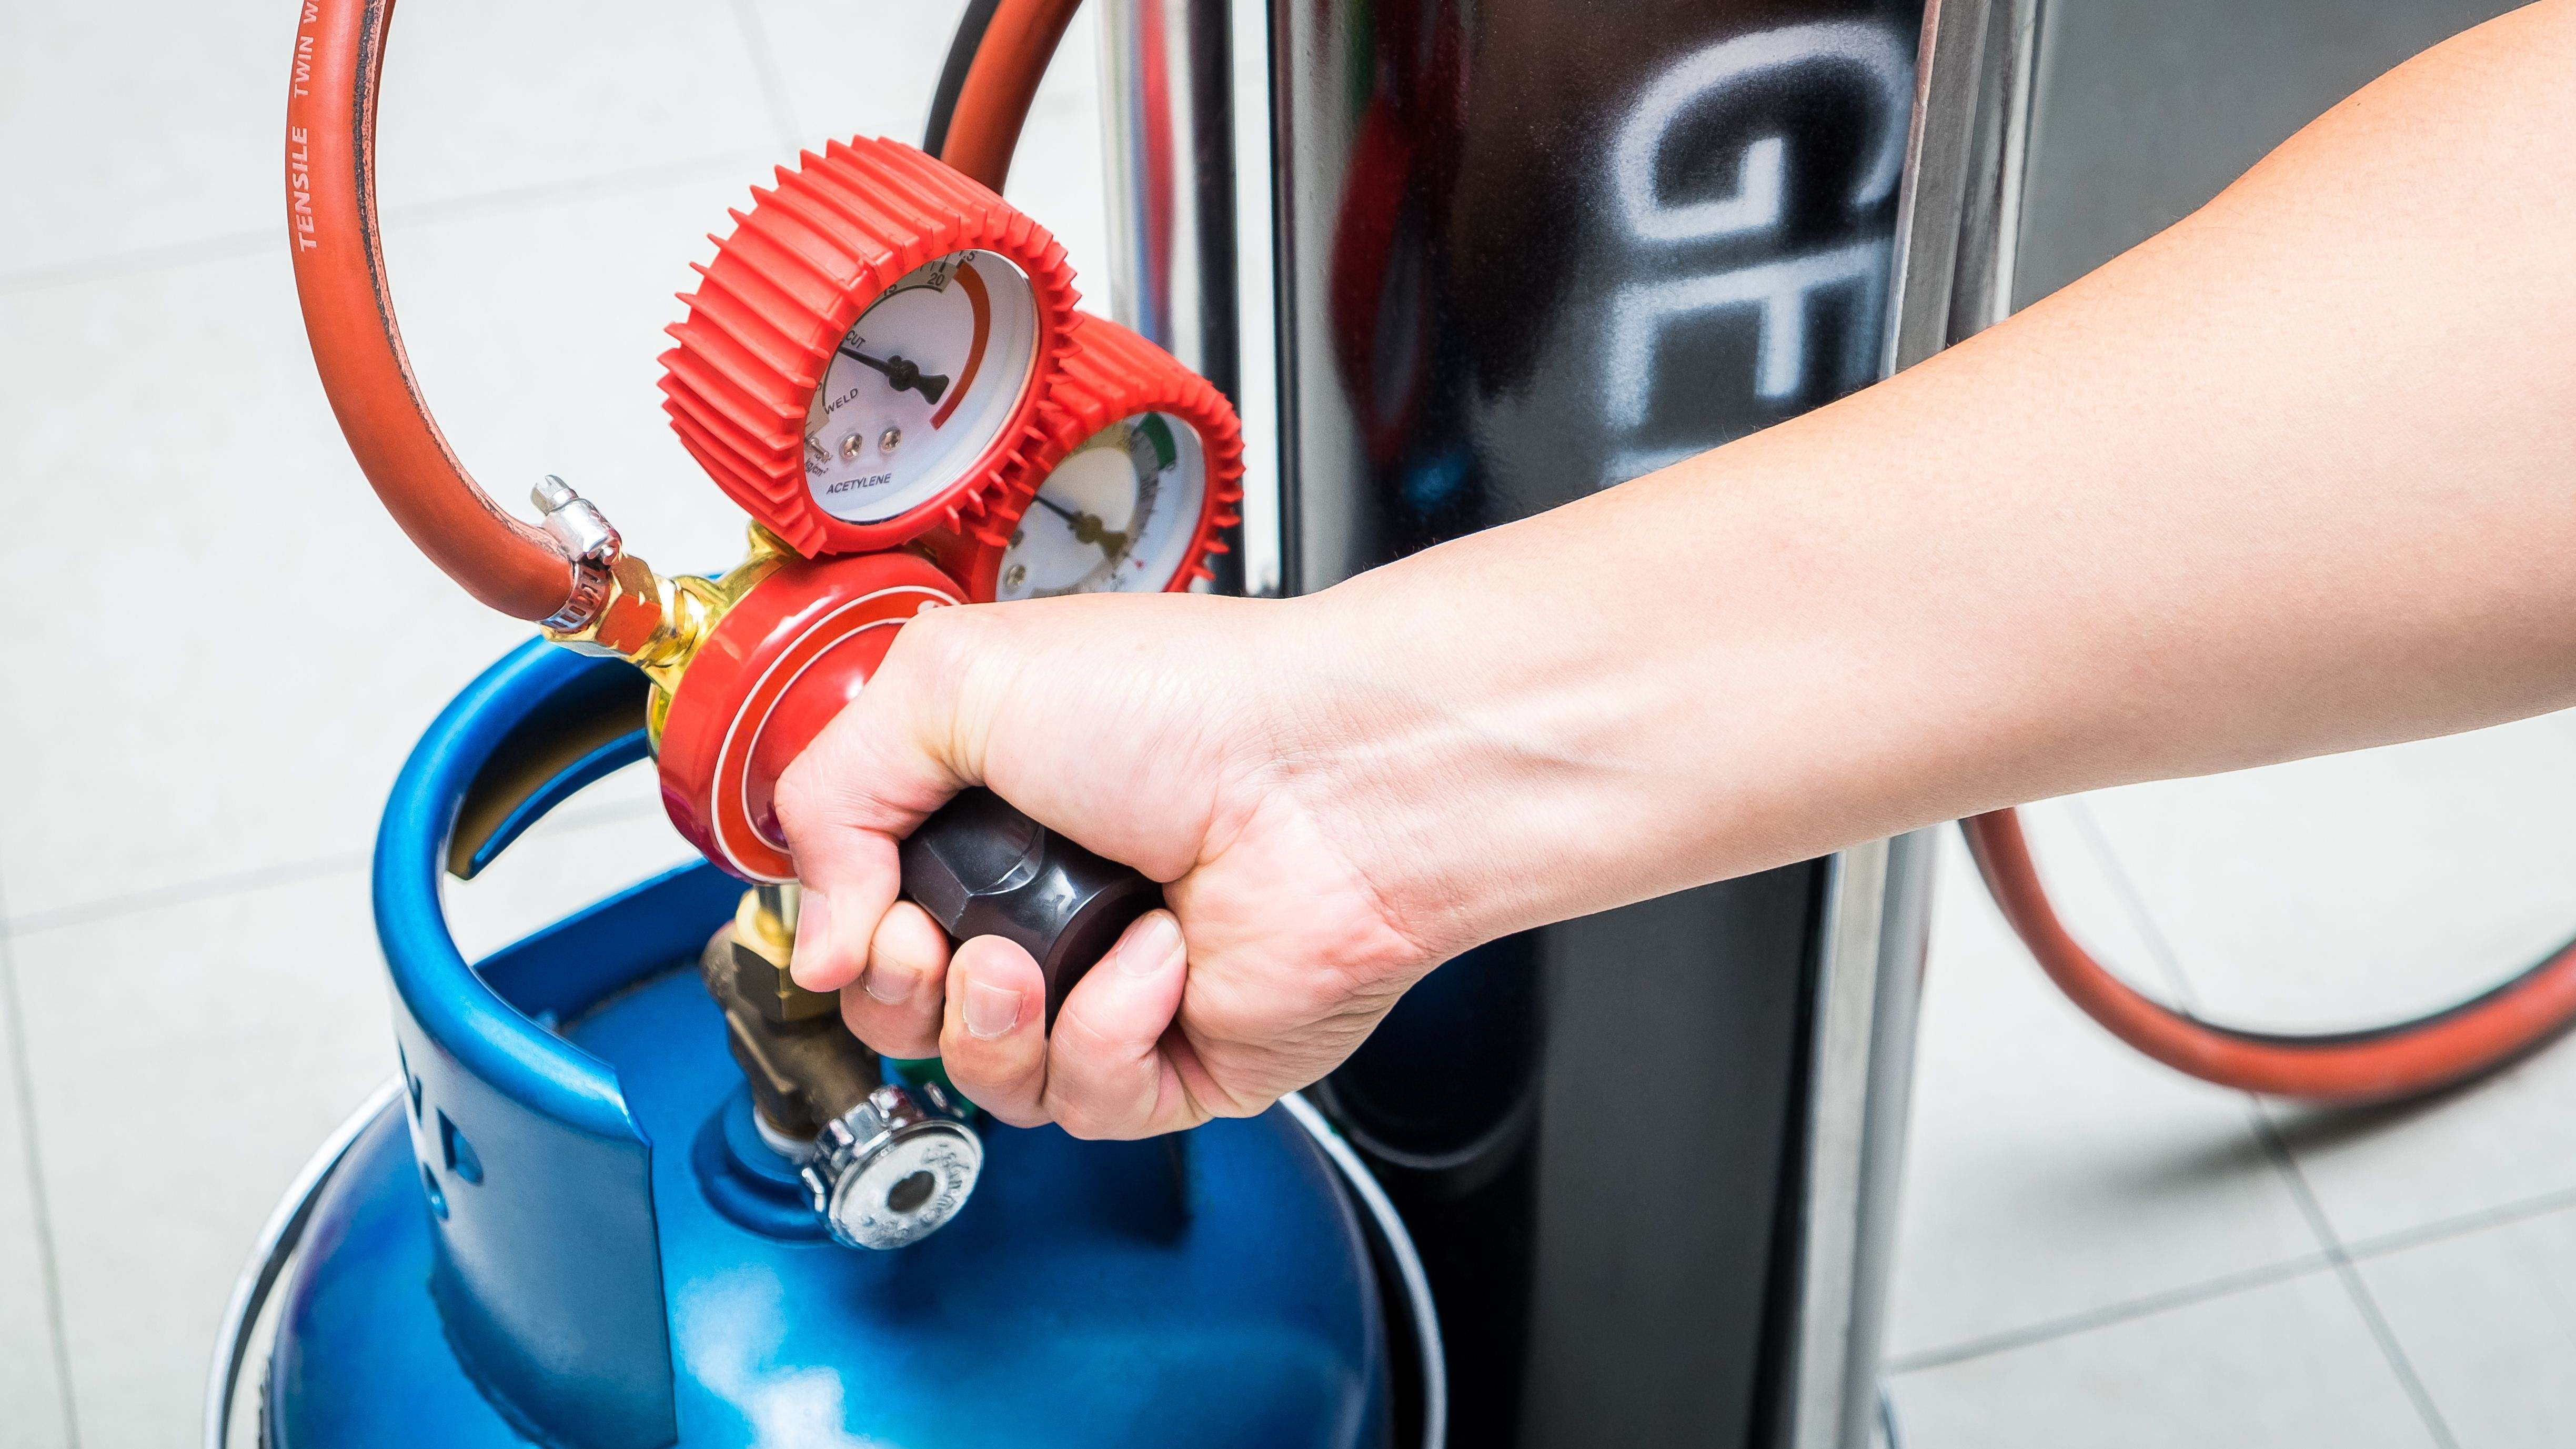 Gas cylinders for flame welding buying guide